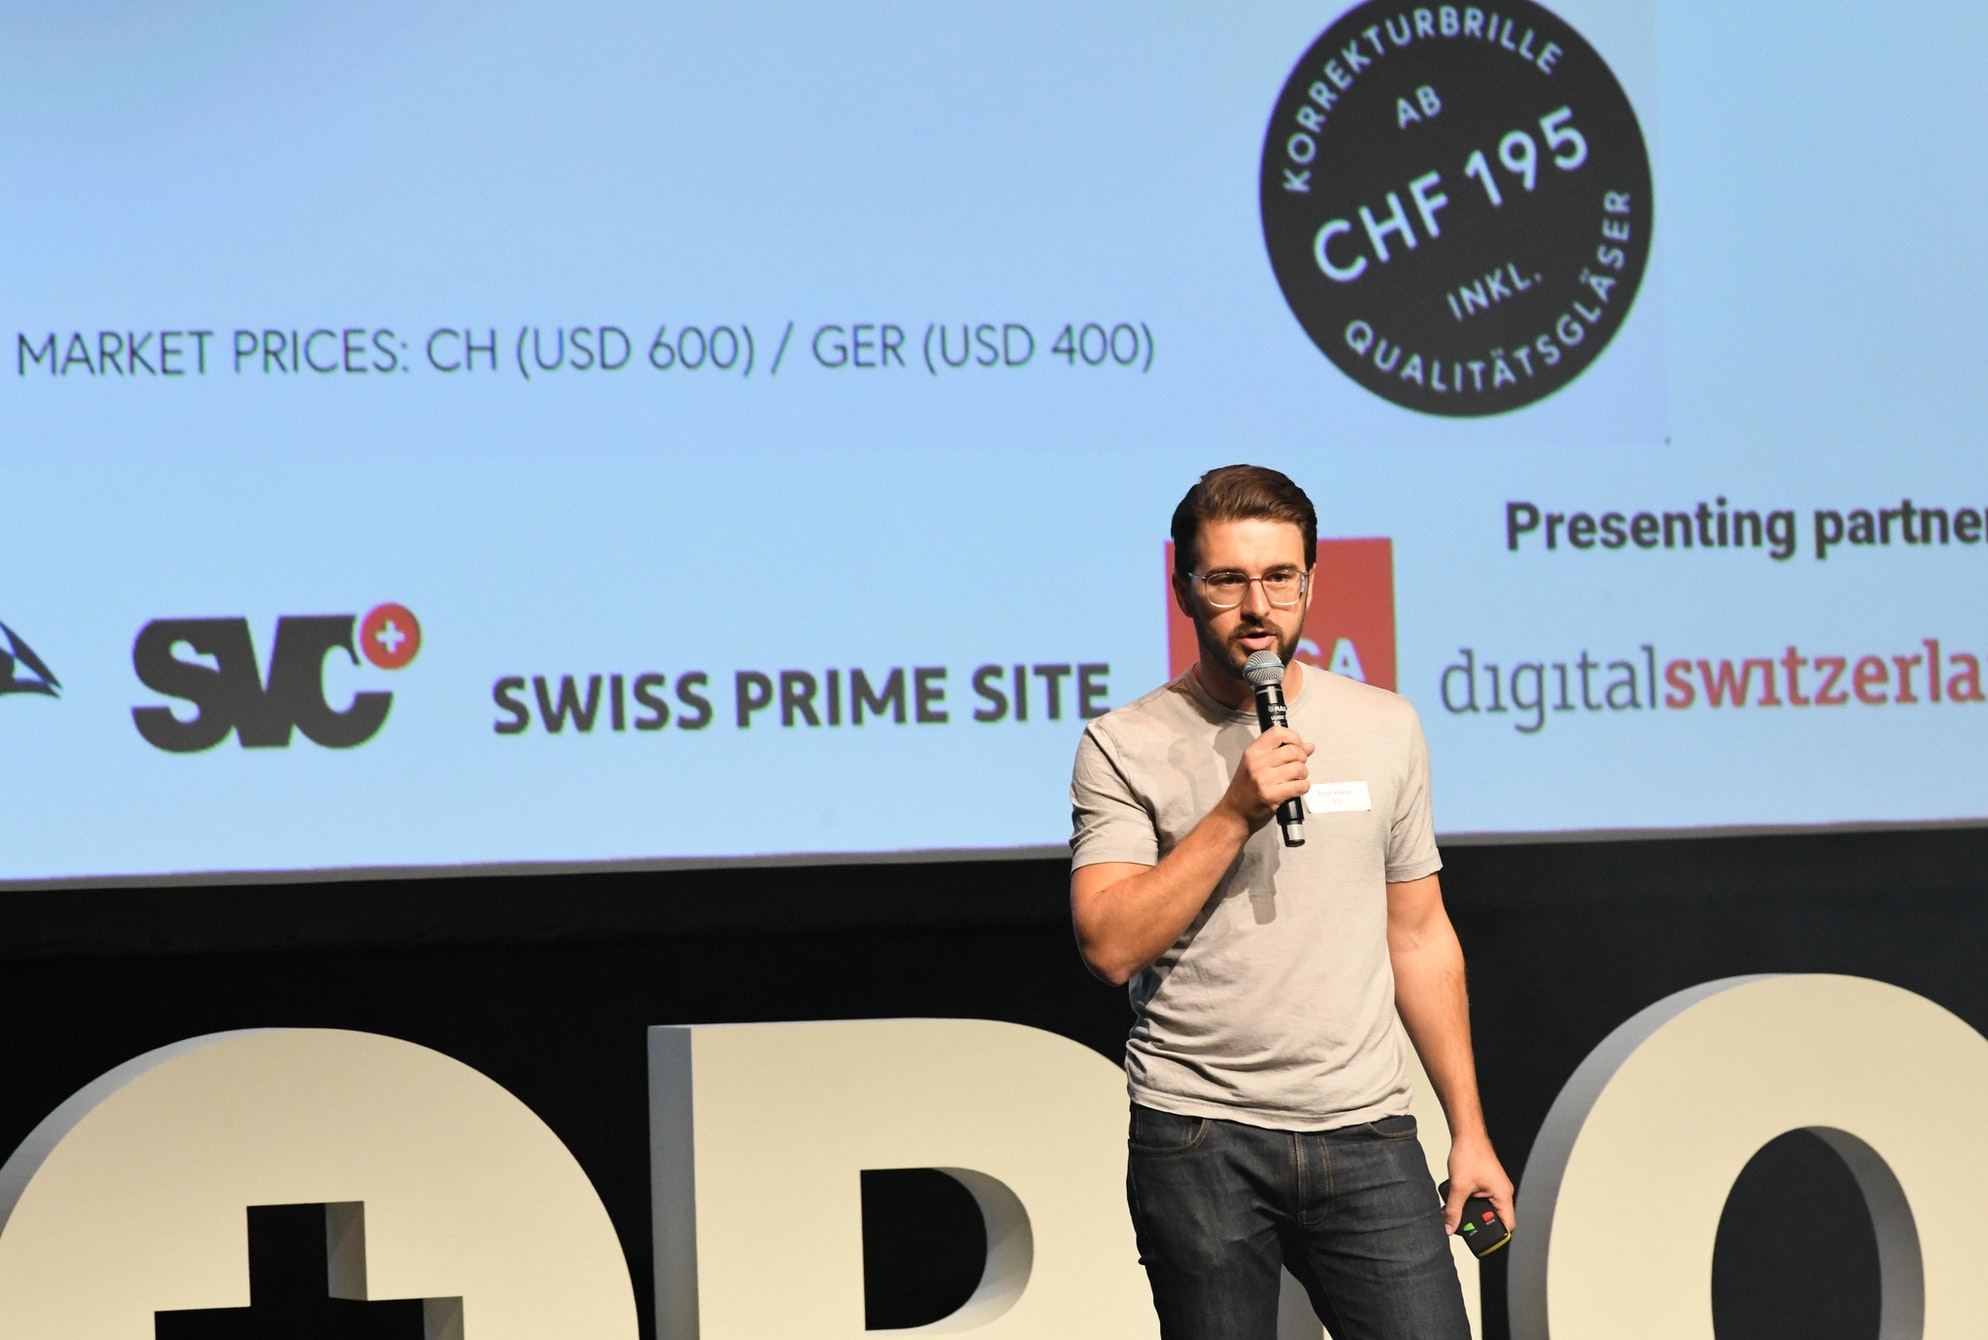 TOP 100 Swiss startup VIU raises additional funds of CHF 3m from Credit Suisse to further strengthen its international presence